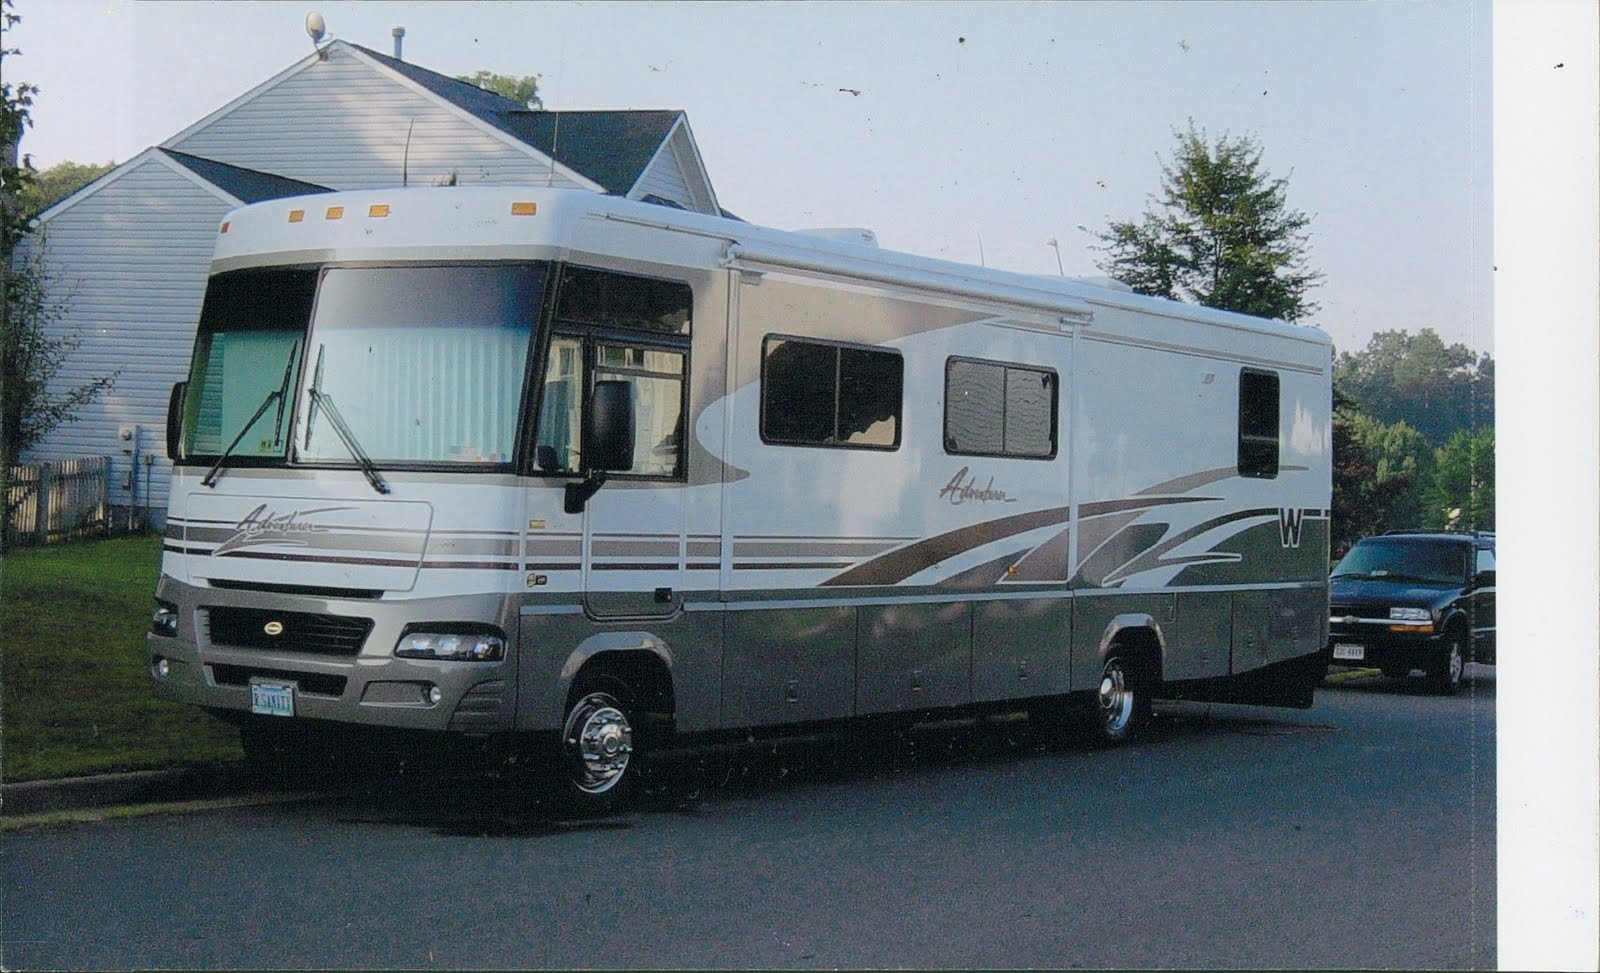 Beautiful 1 Price To Purchase Generally, Diesel RVs Are About Double The Price Of Gasoline Motorhomes The Average Gas Motorhome Is Within The Range Of $68,000 To $130,000 You May Check Ford And General Motors For Gasoline